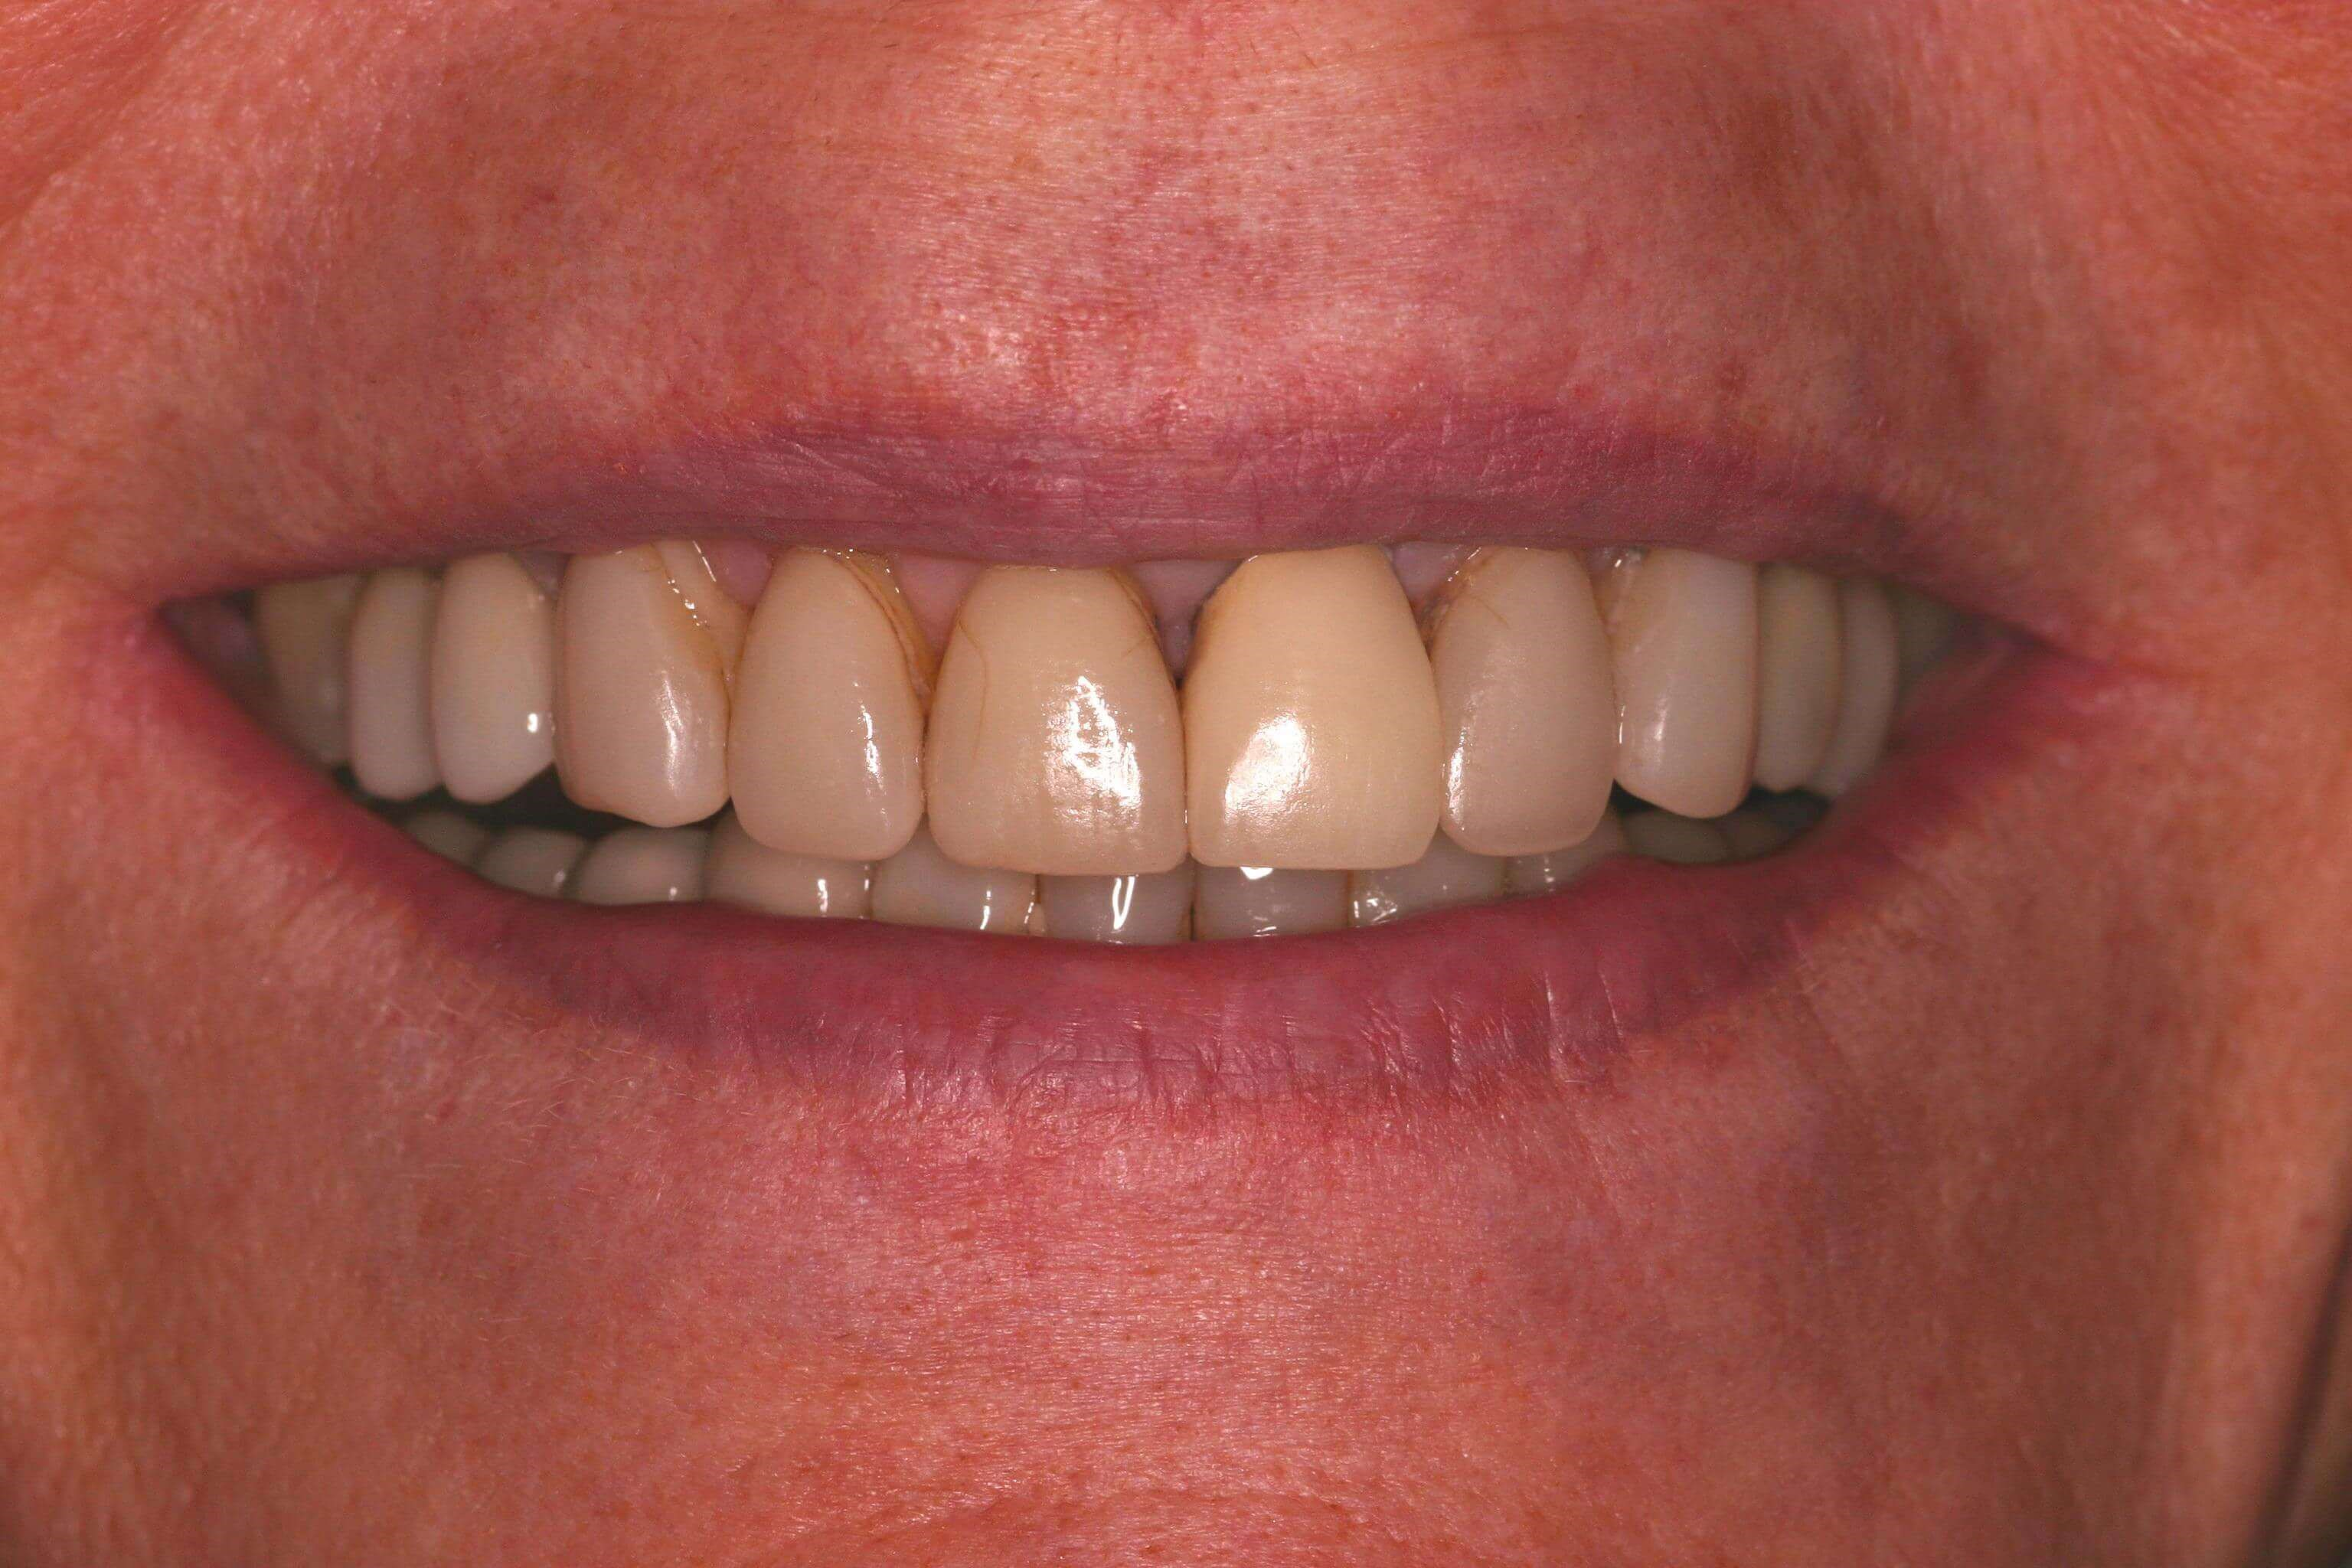 Older Crowns Need Replacement Before